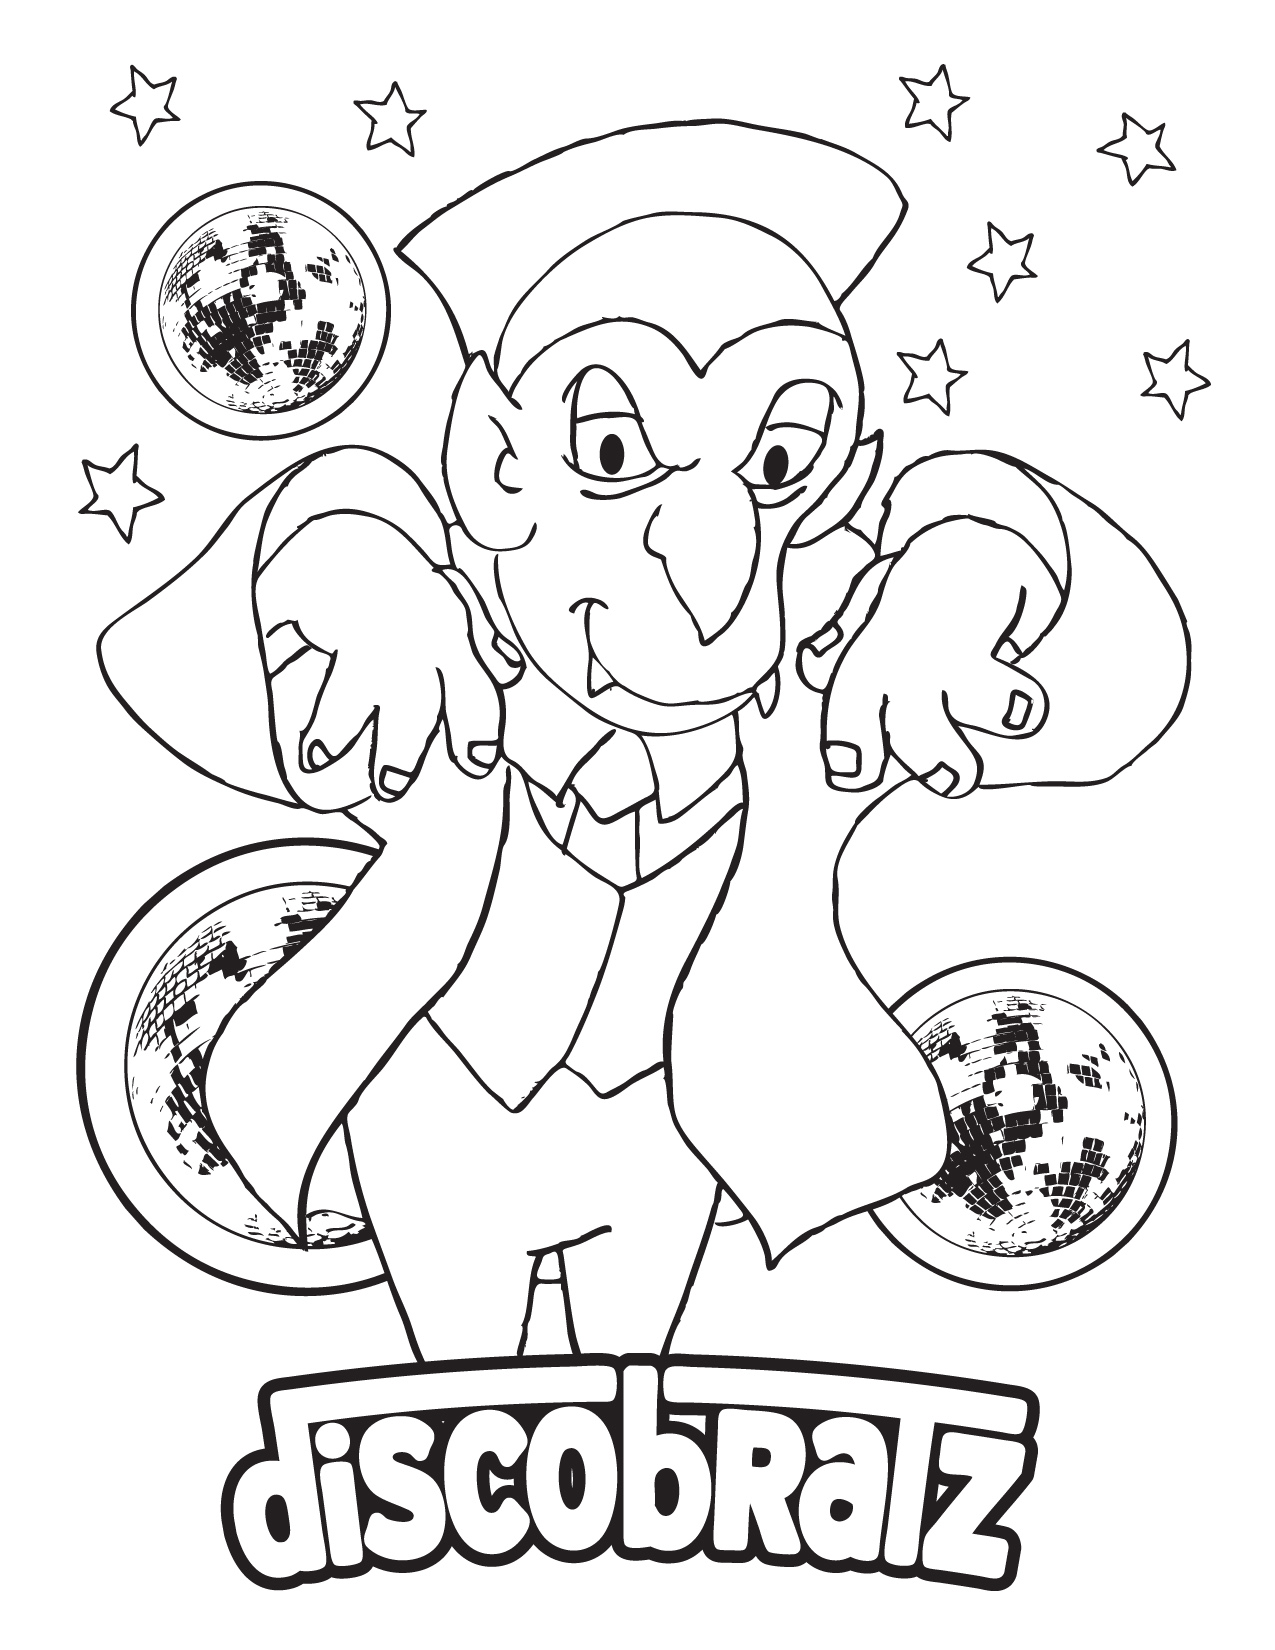 Dancing Halloween Vampire Coloring Page Available from